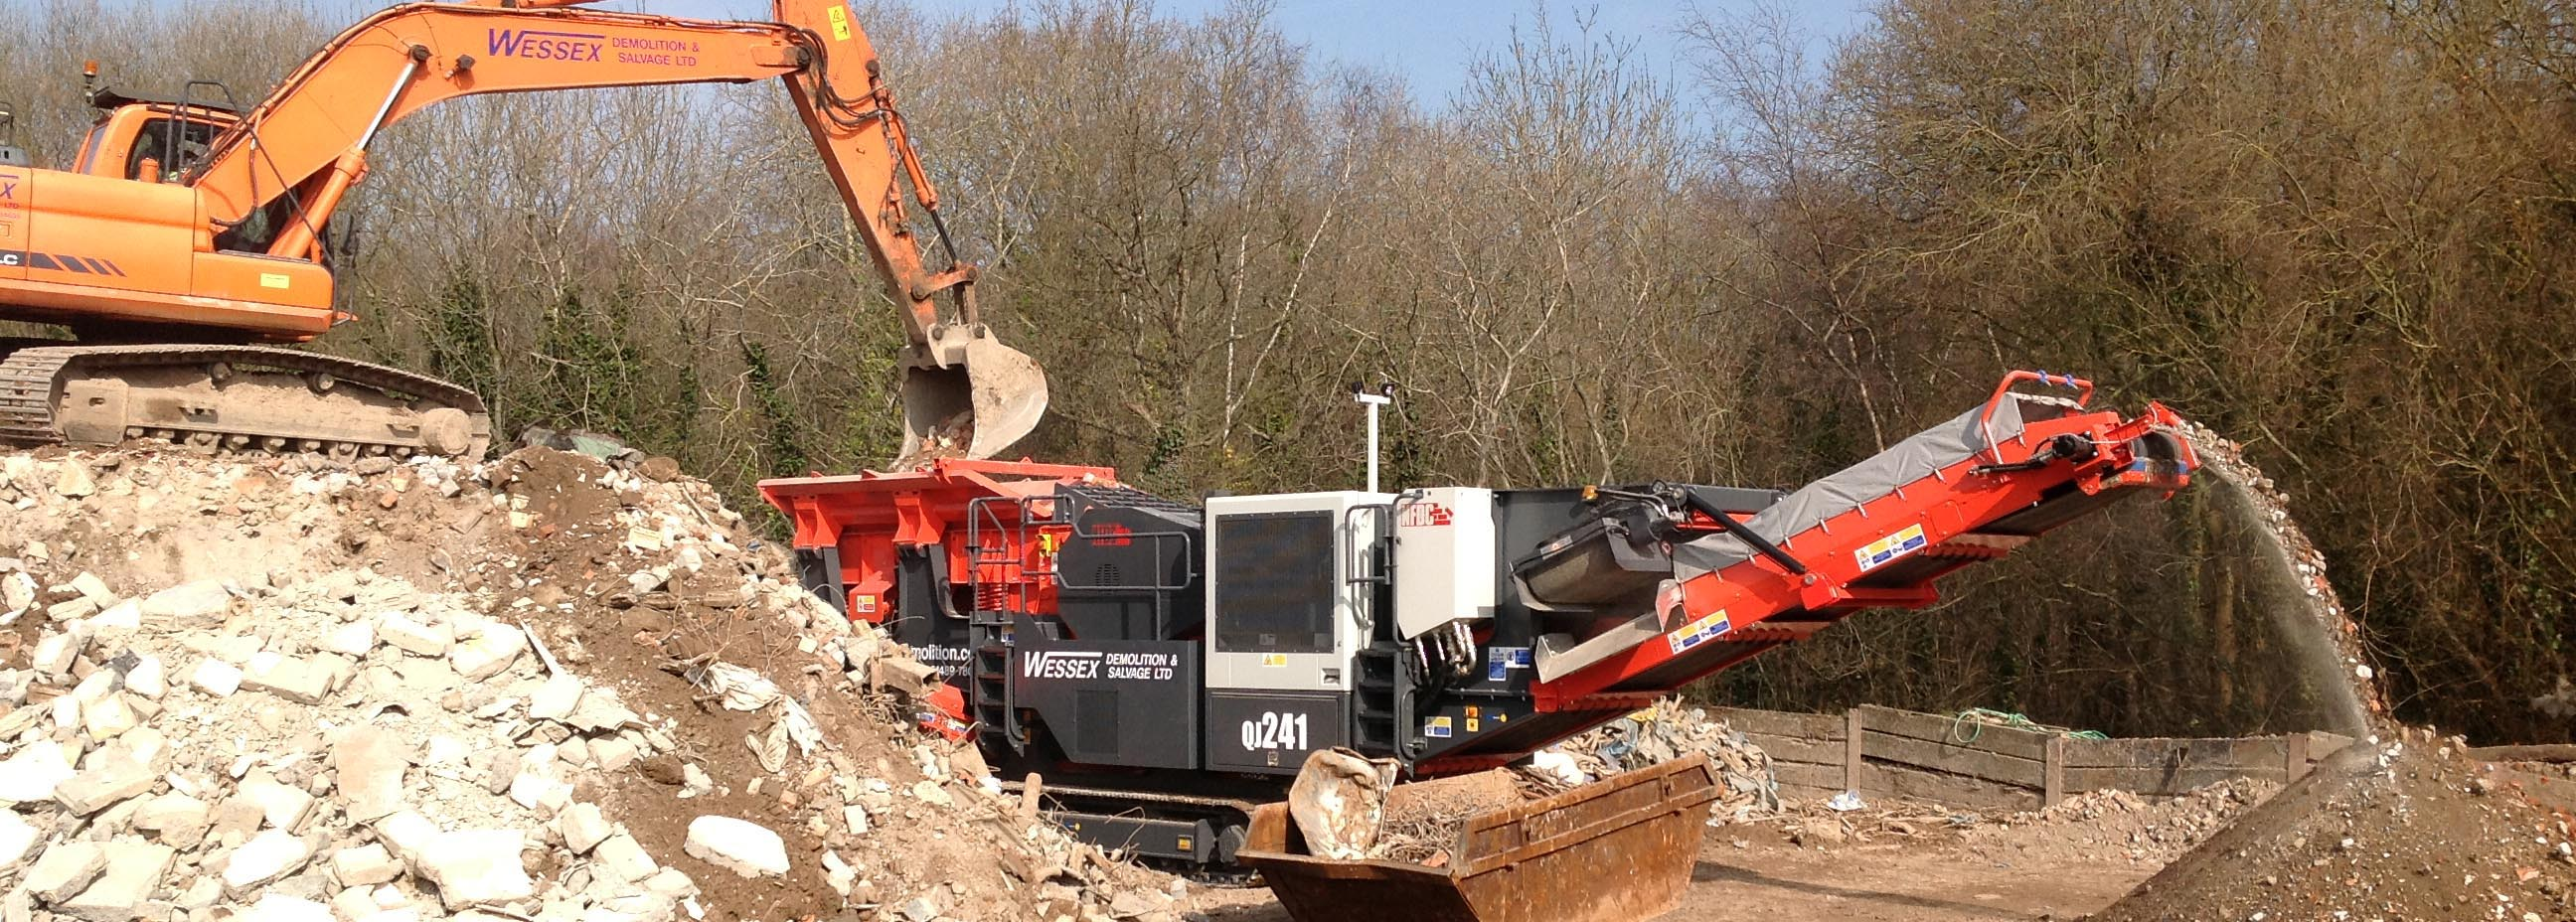 Plant Hire - Wessex Demolition - Sandvik QJ241 Crusher